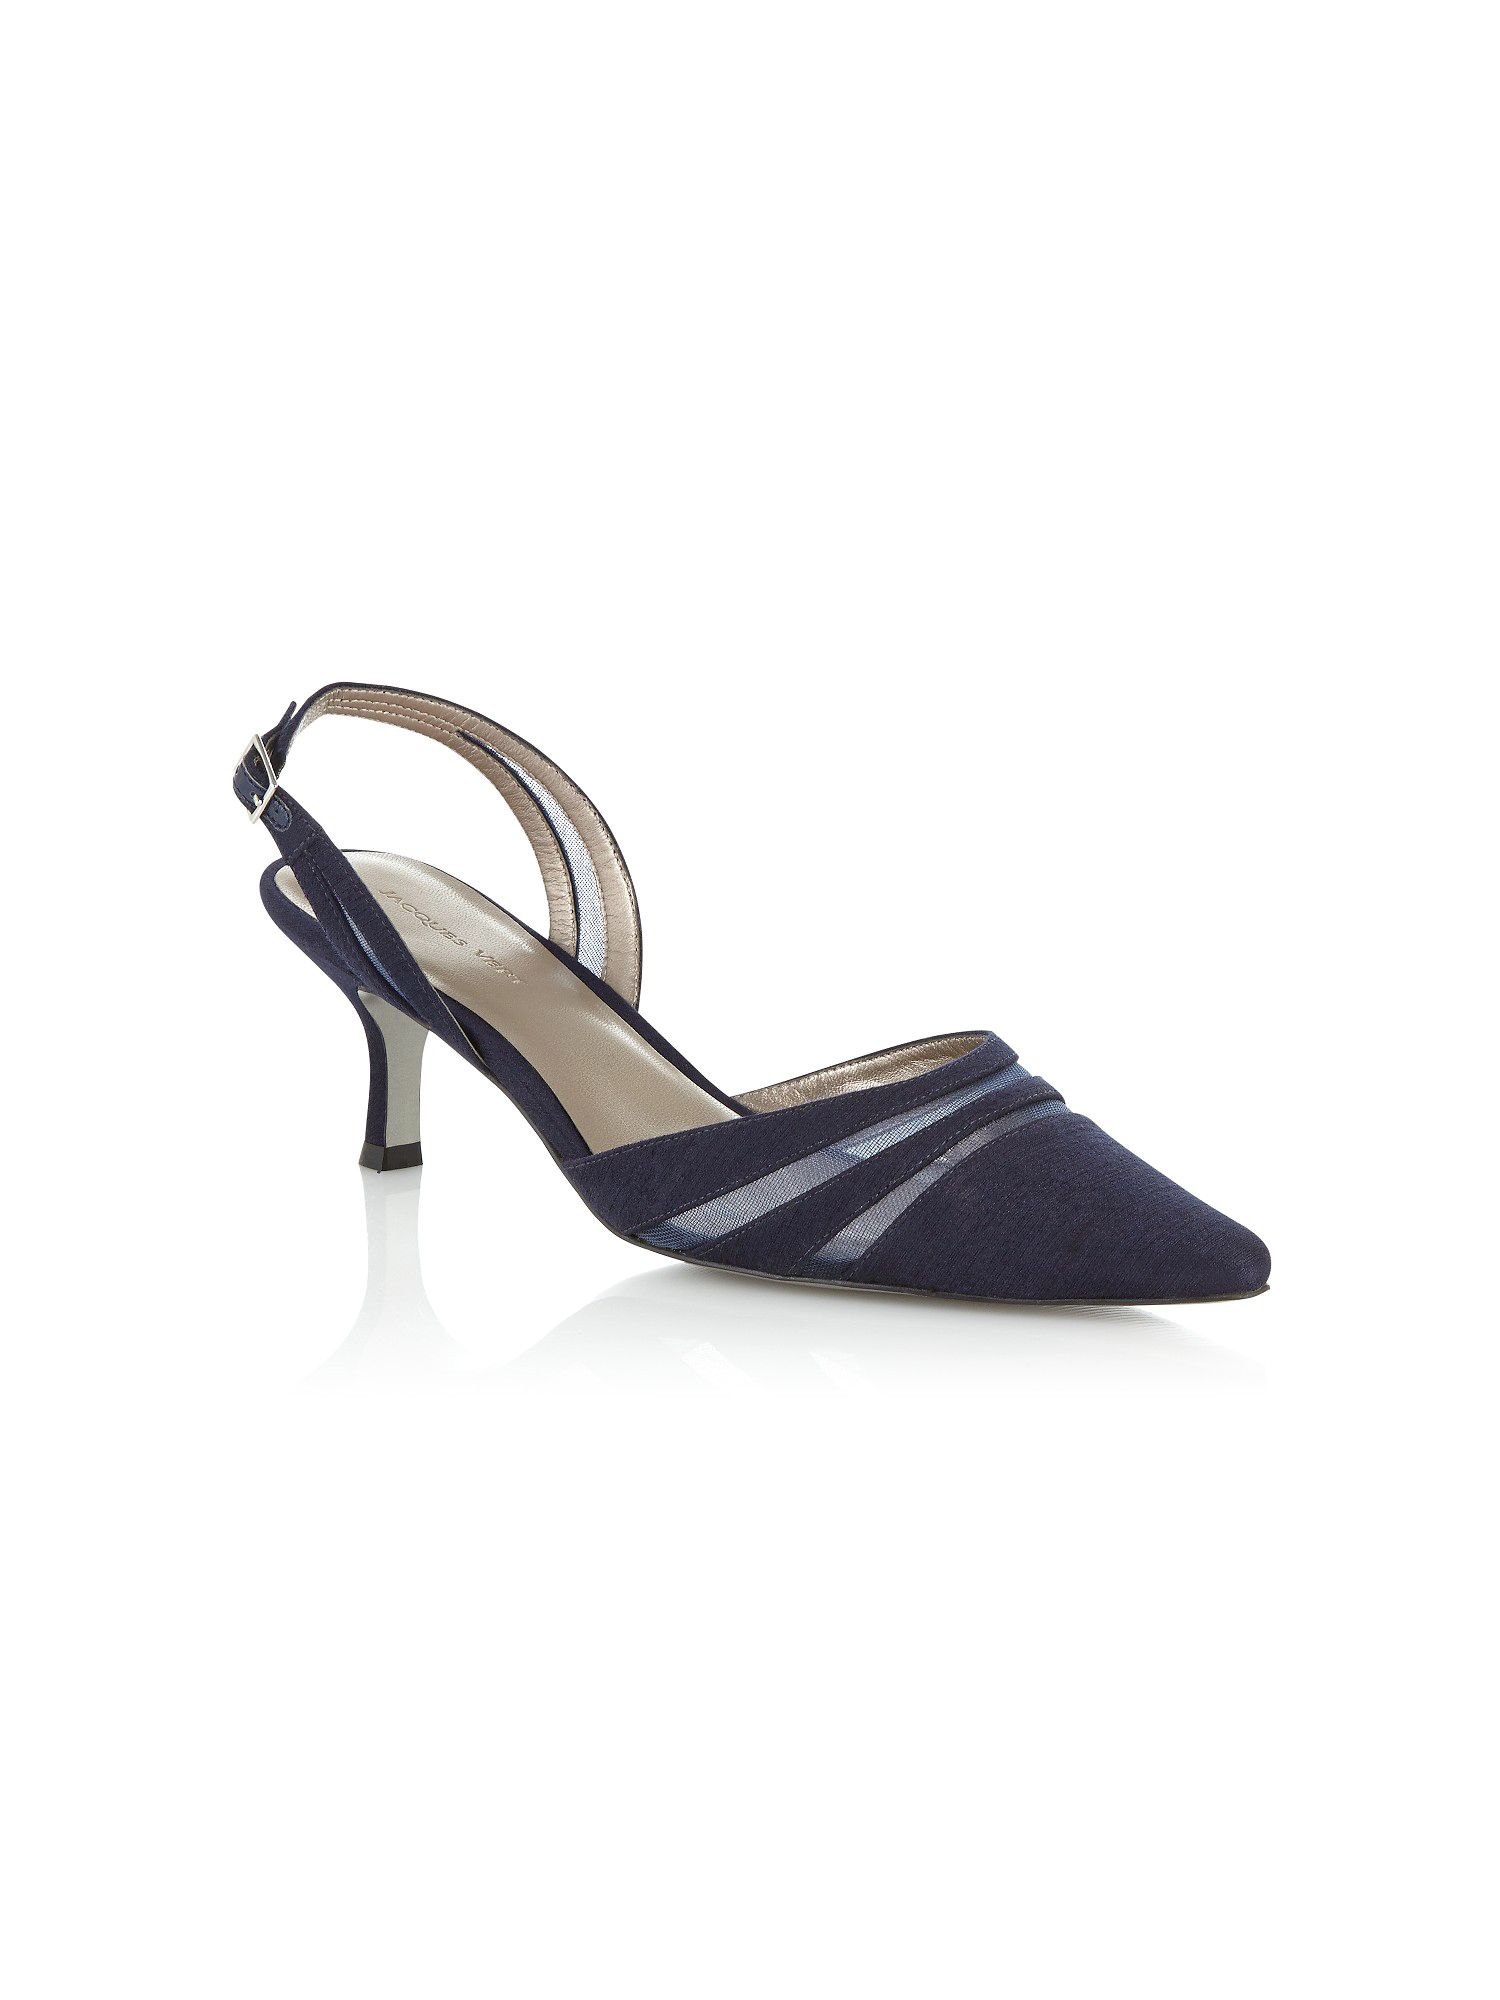 Monique slingback shoes